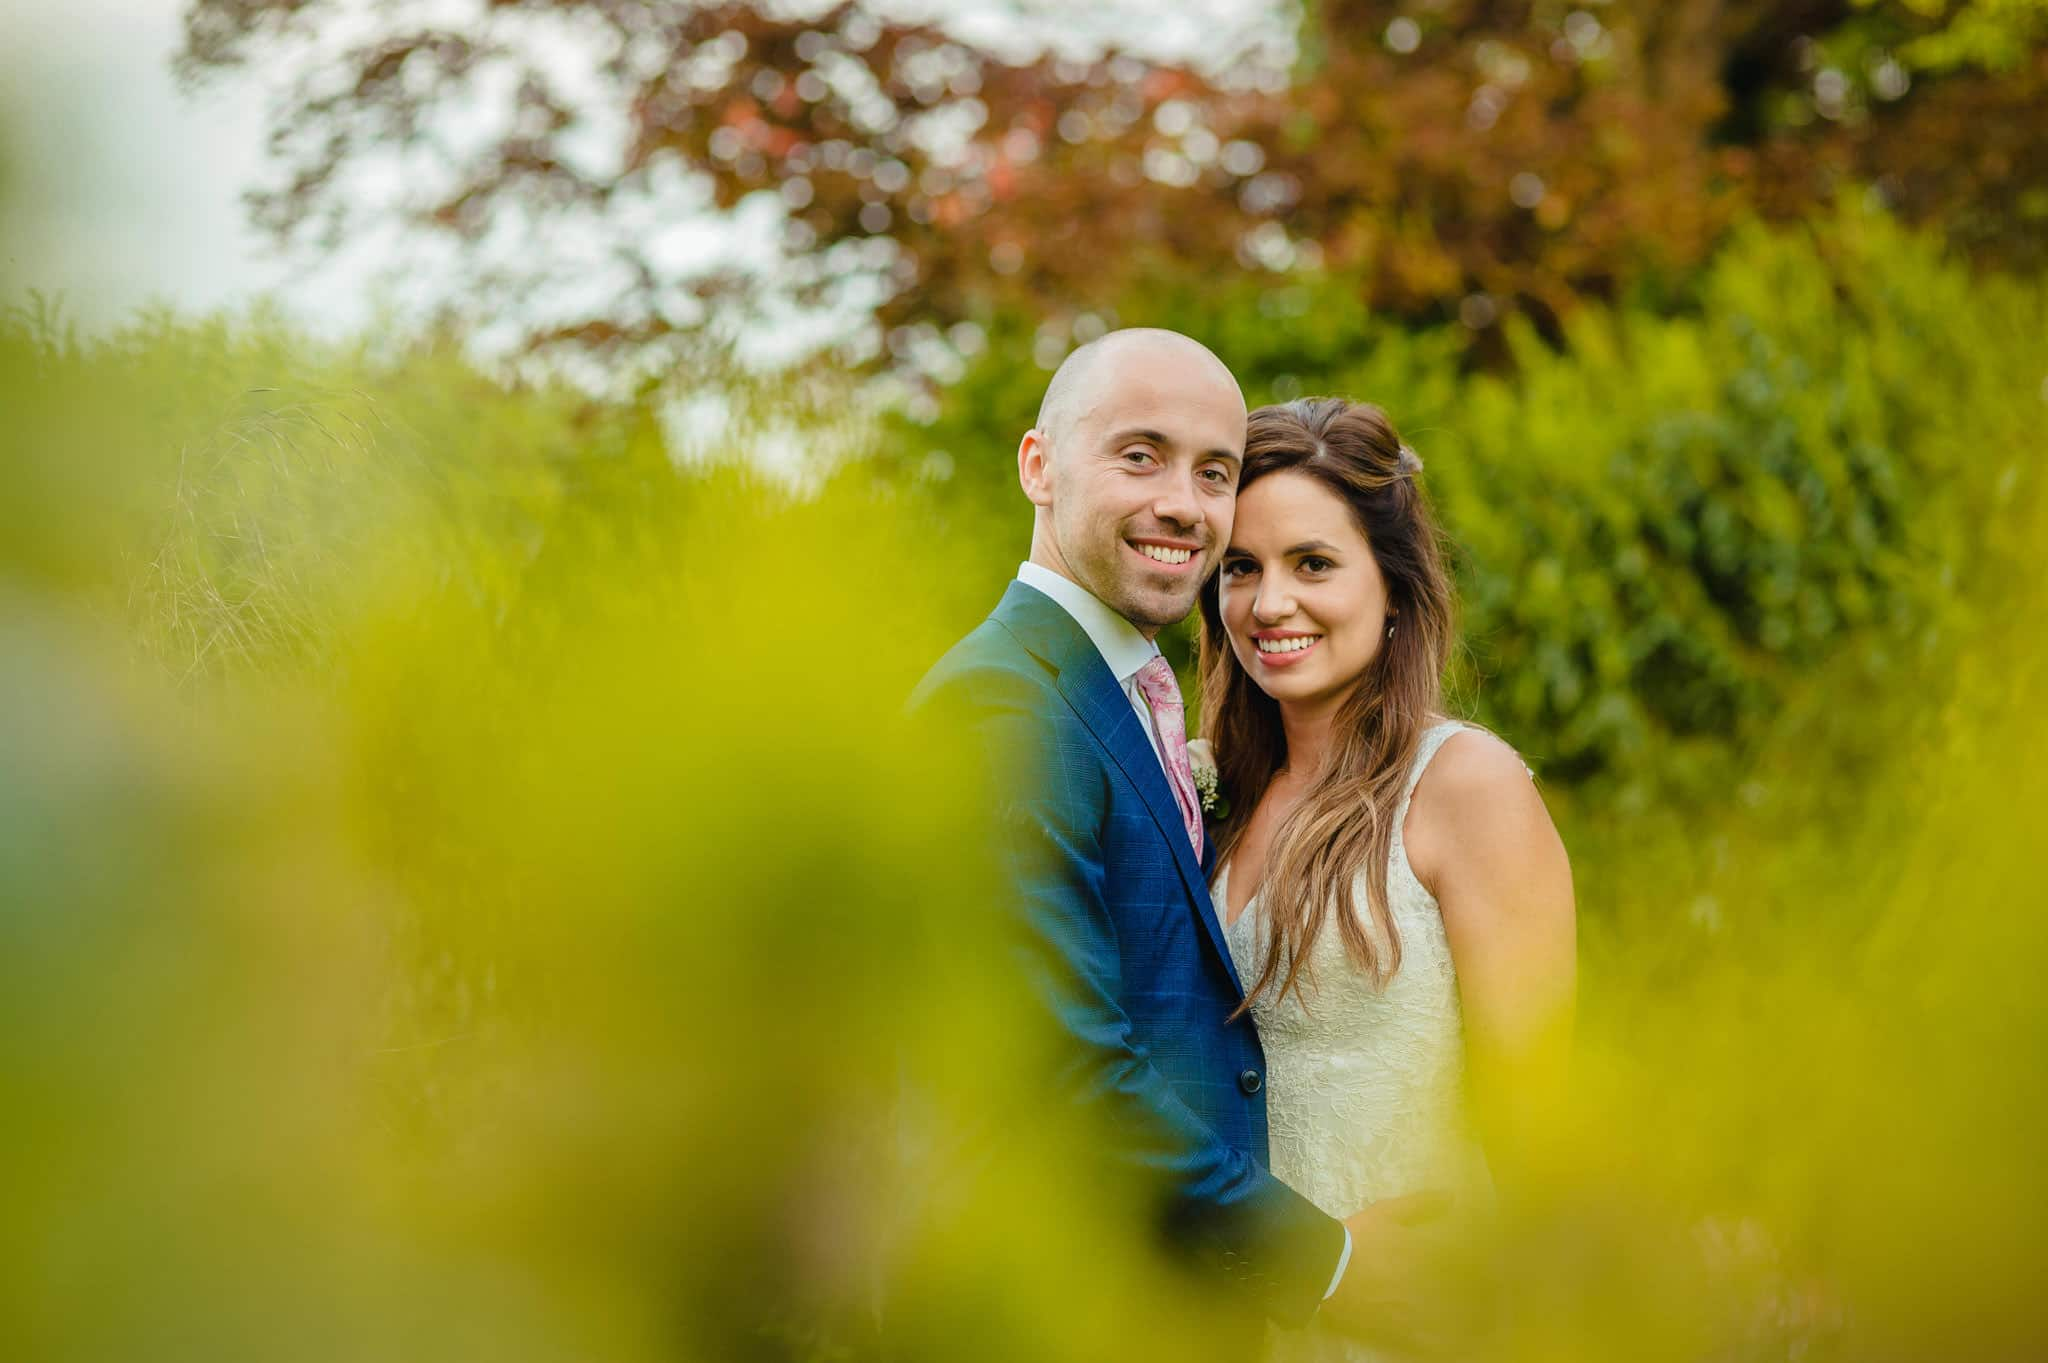 wedding at redhouse barn 181 - Wedding at Redhouse Barn in Stoke Prior, Worcestershire